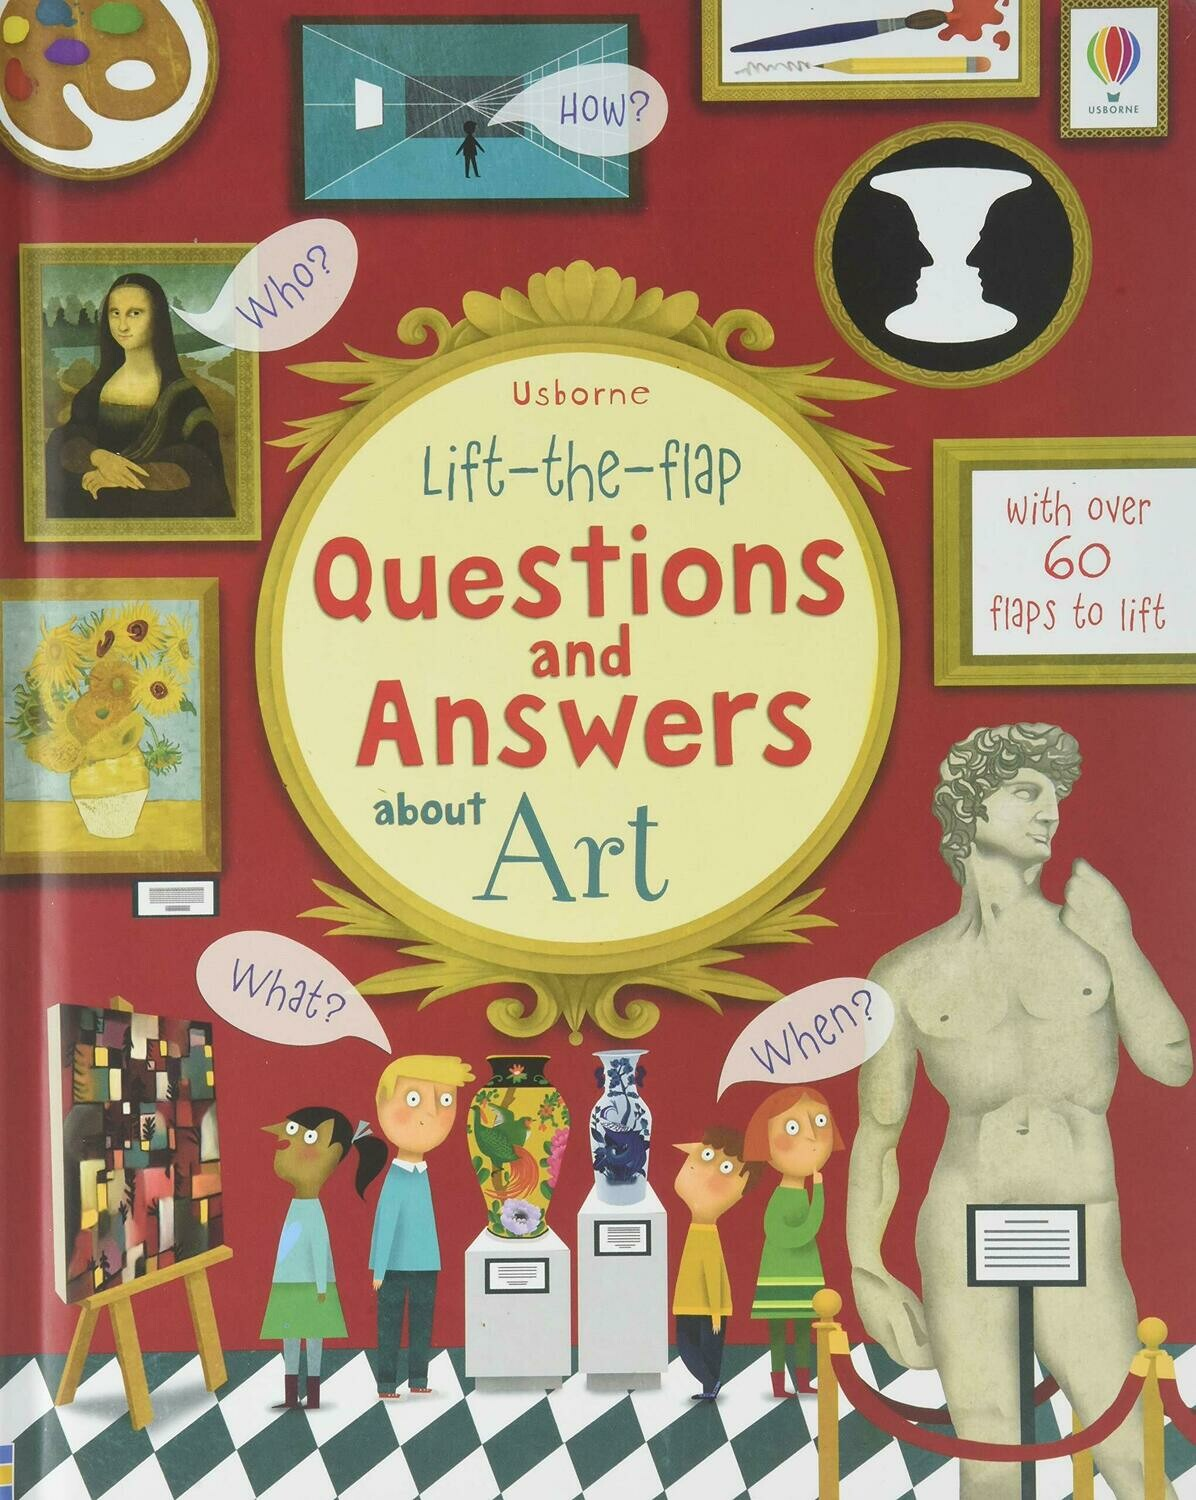 Questions & Answers Art